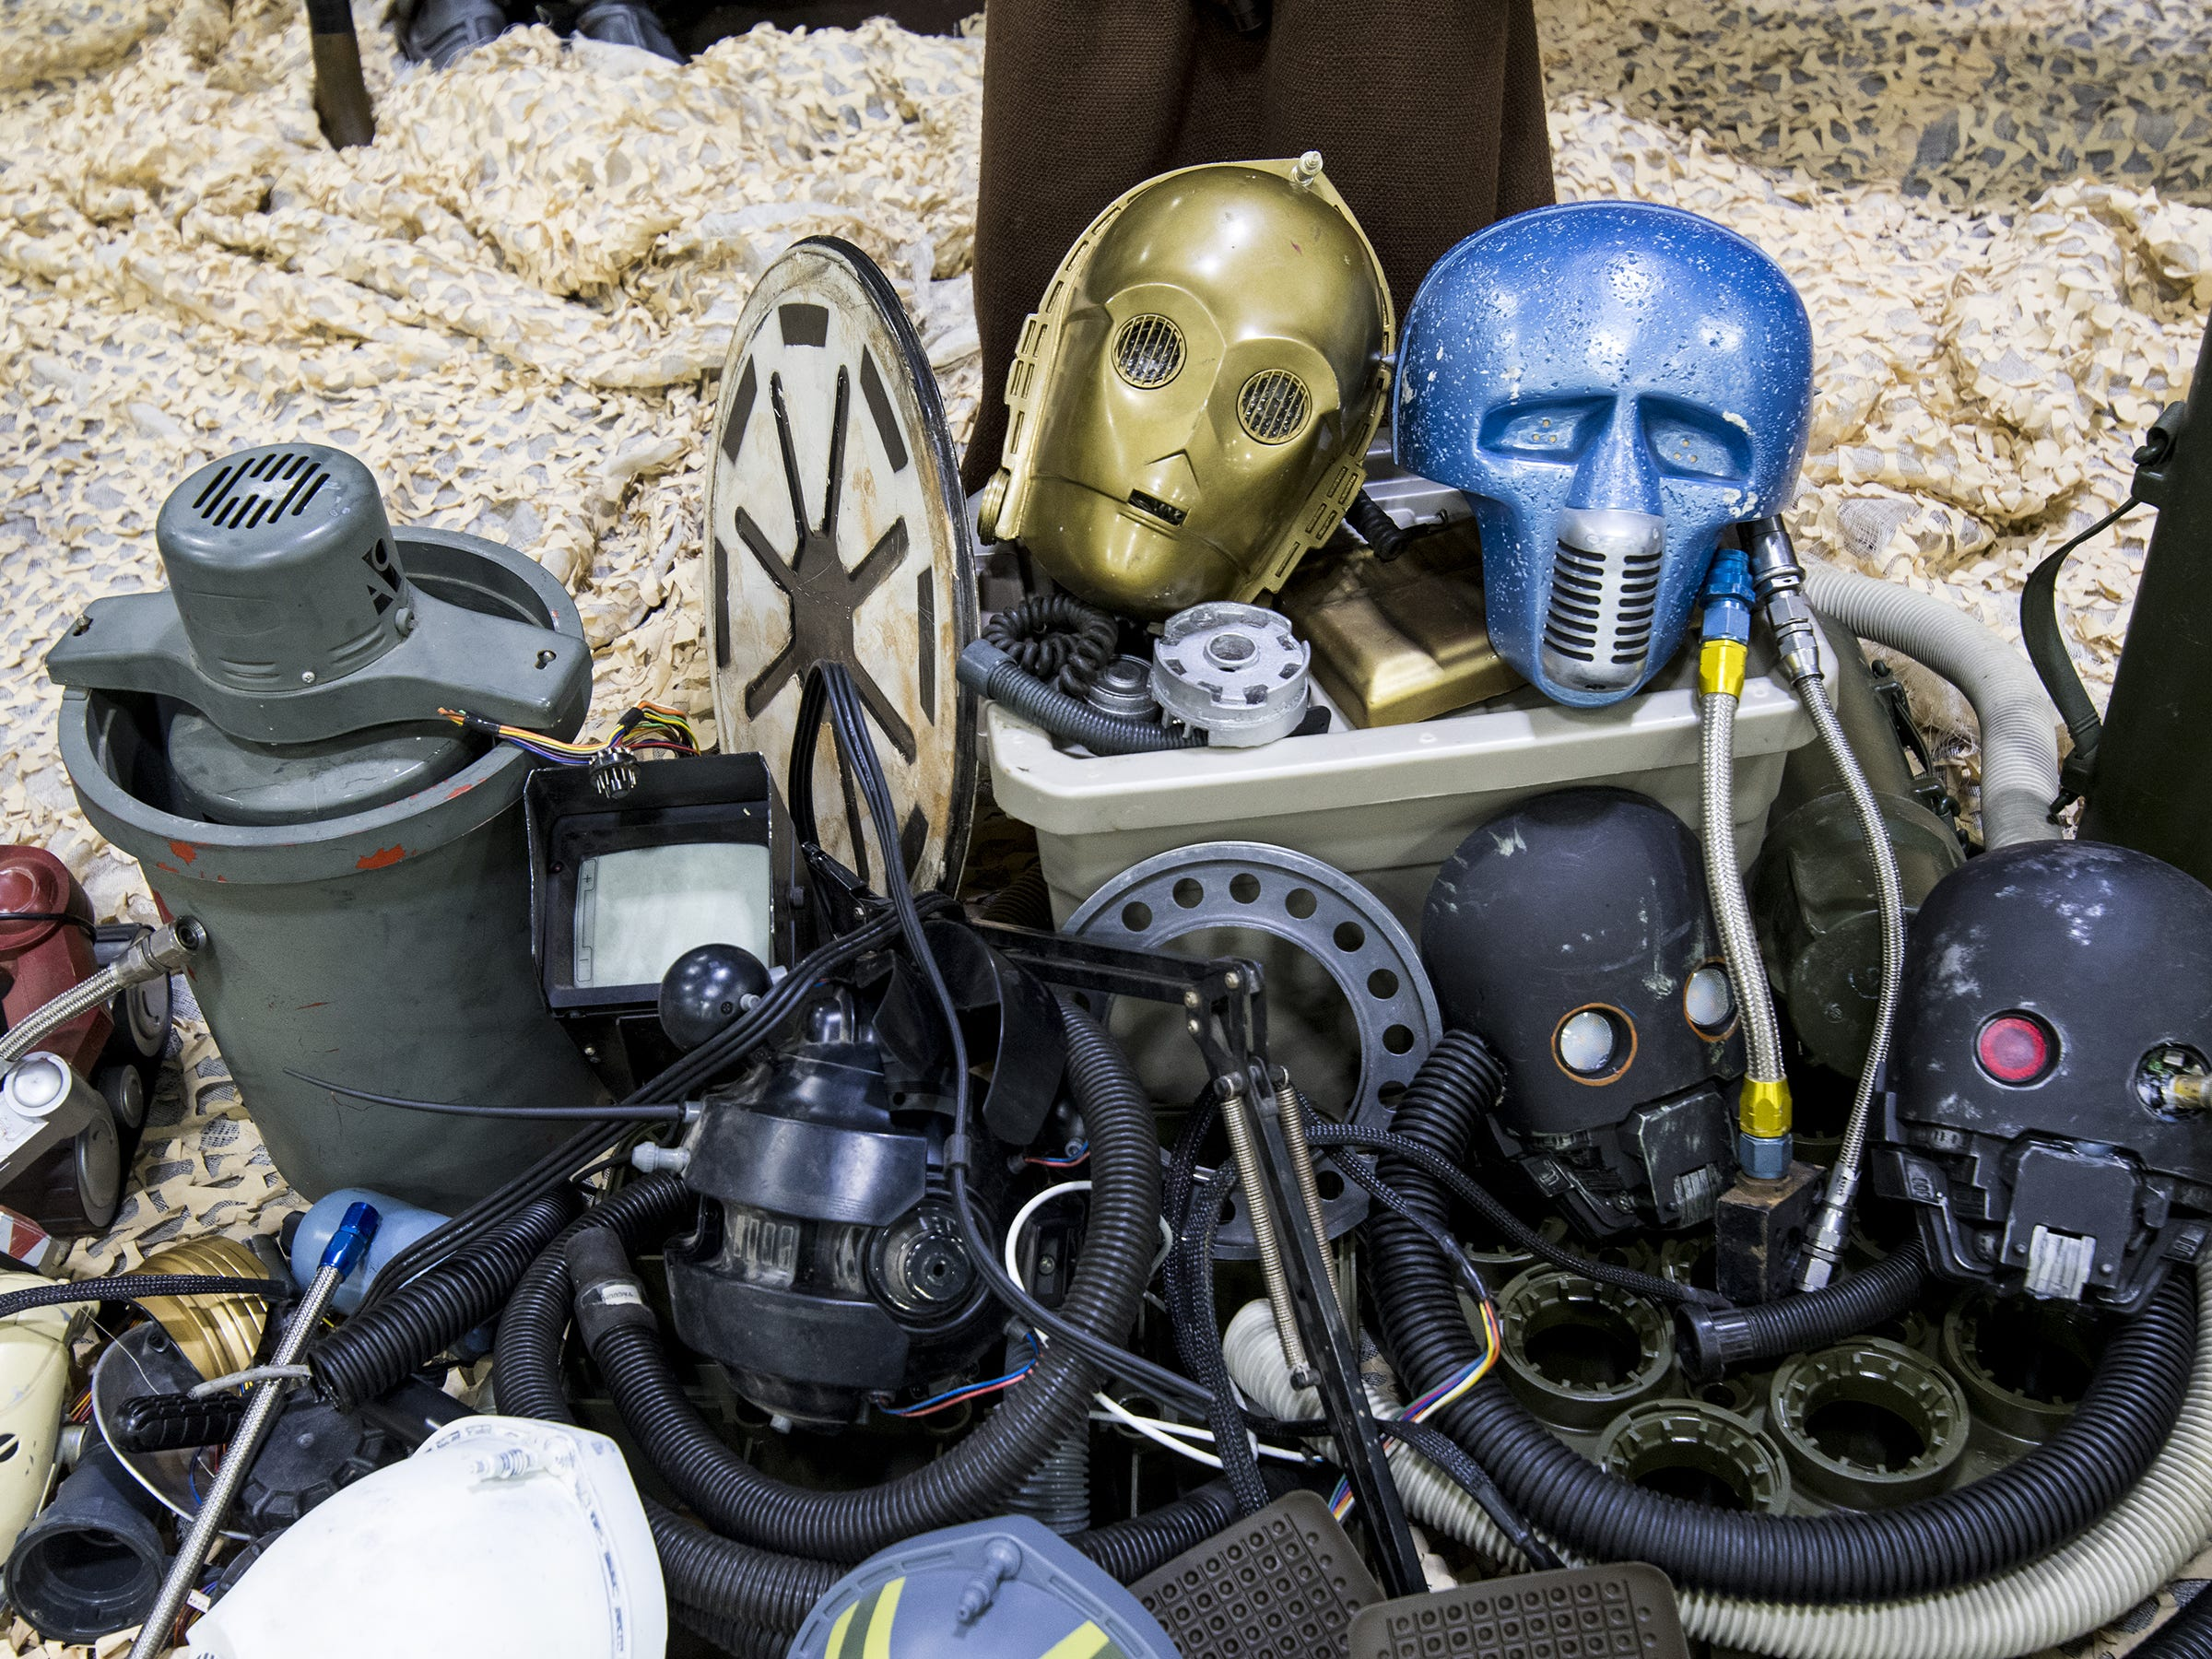 A jumble of Stars Wars props sit in a display.